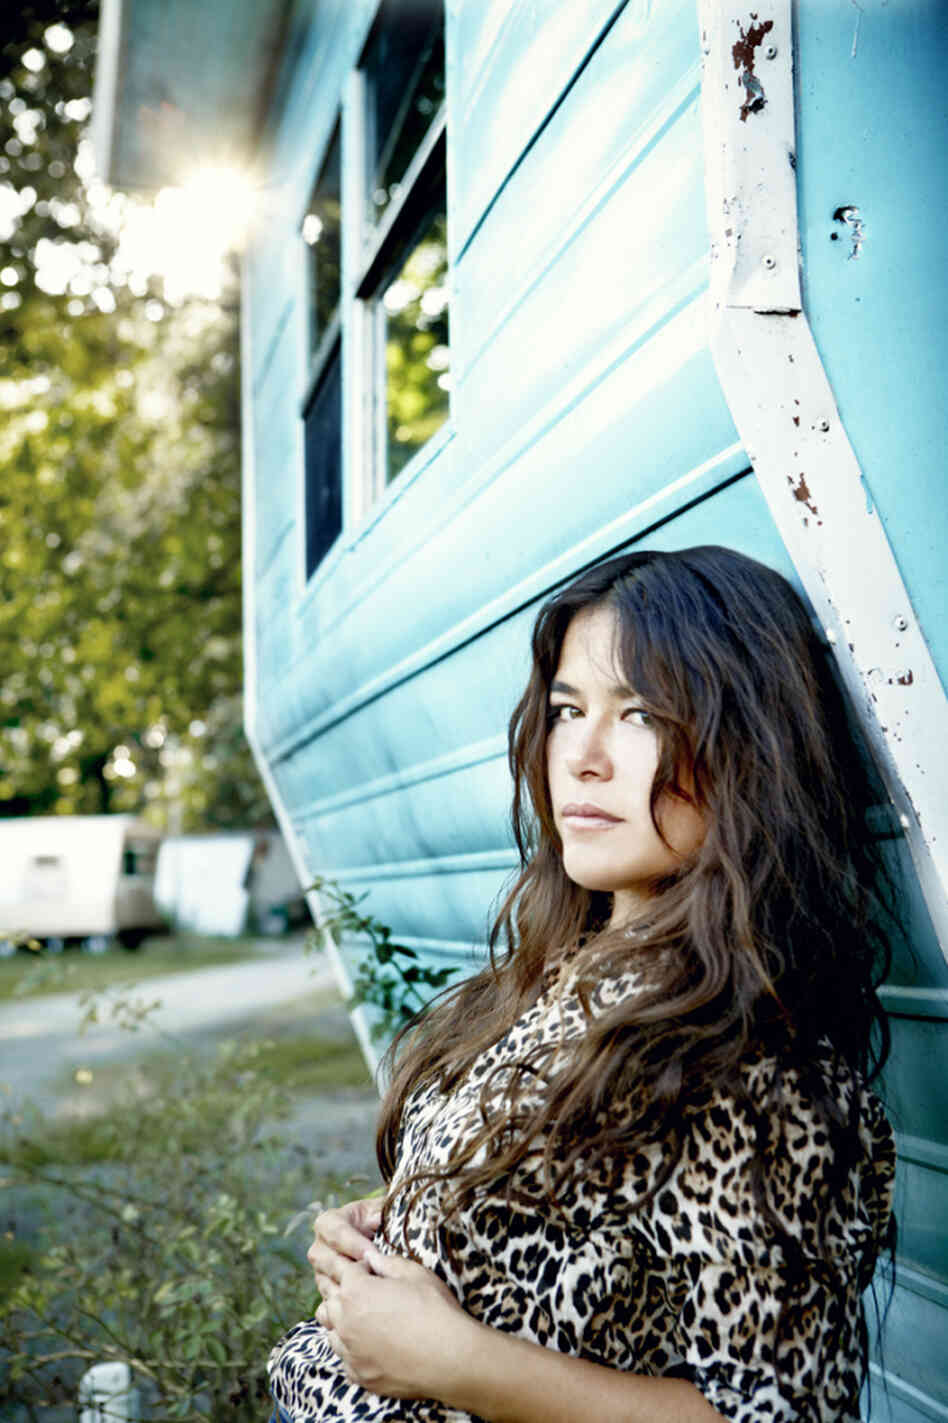 Rachel Yamagata's latest album is titled Chesapeake.